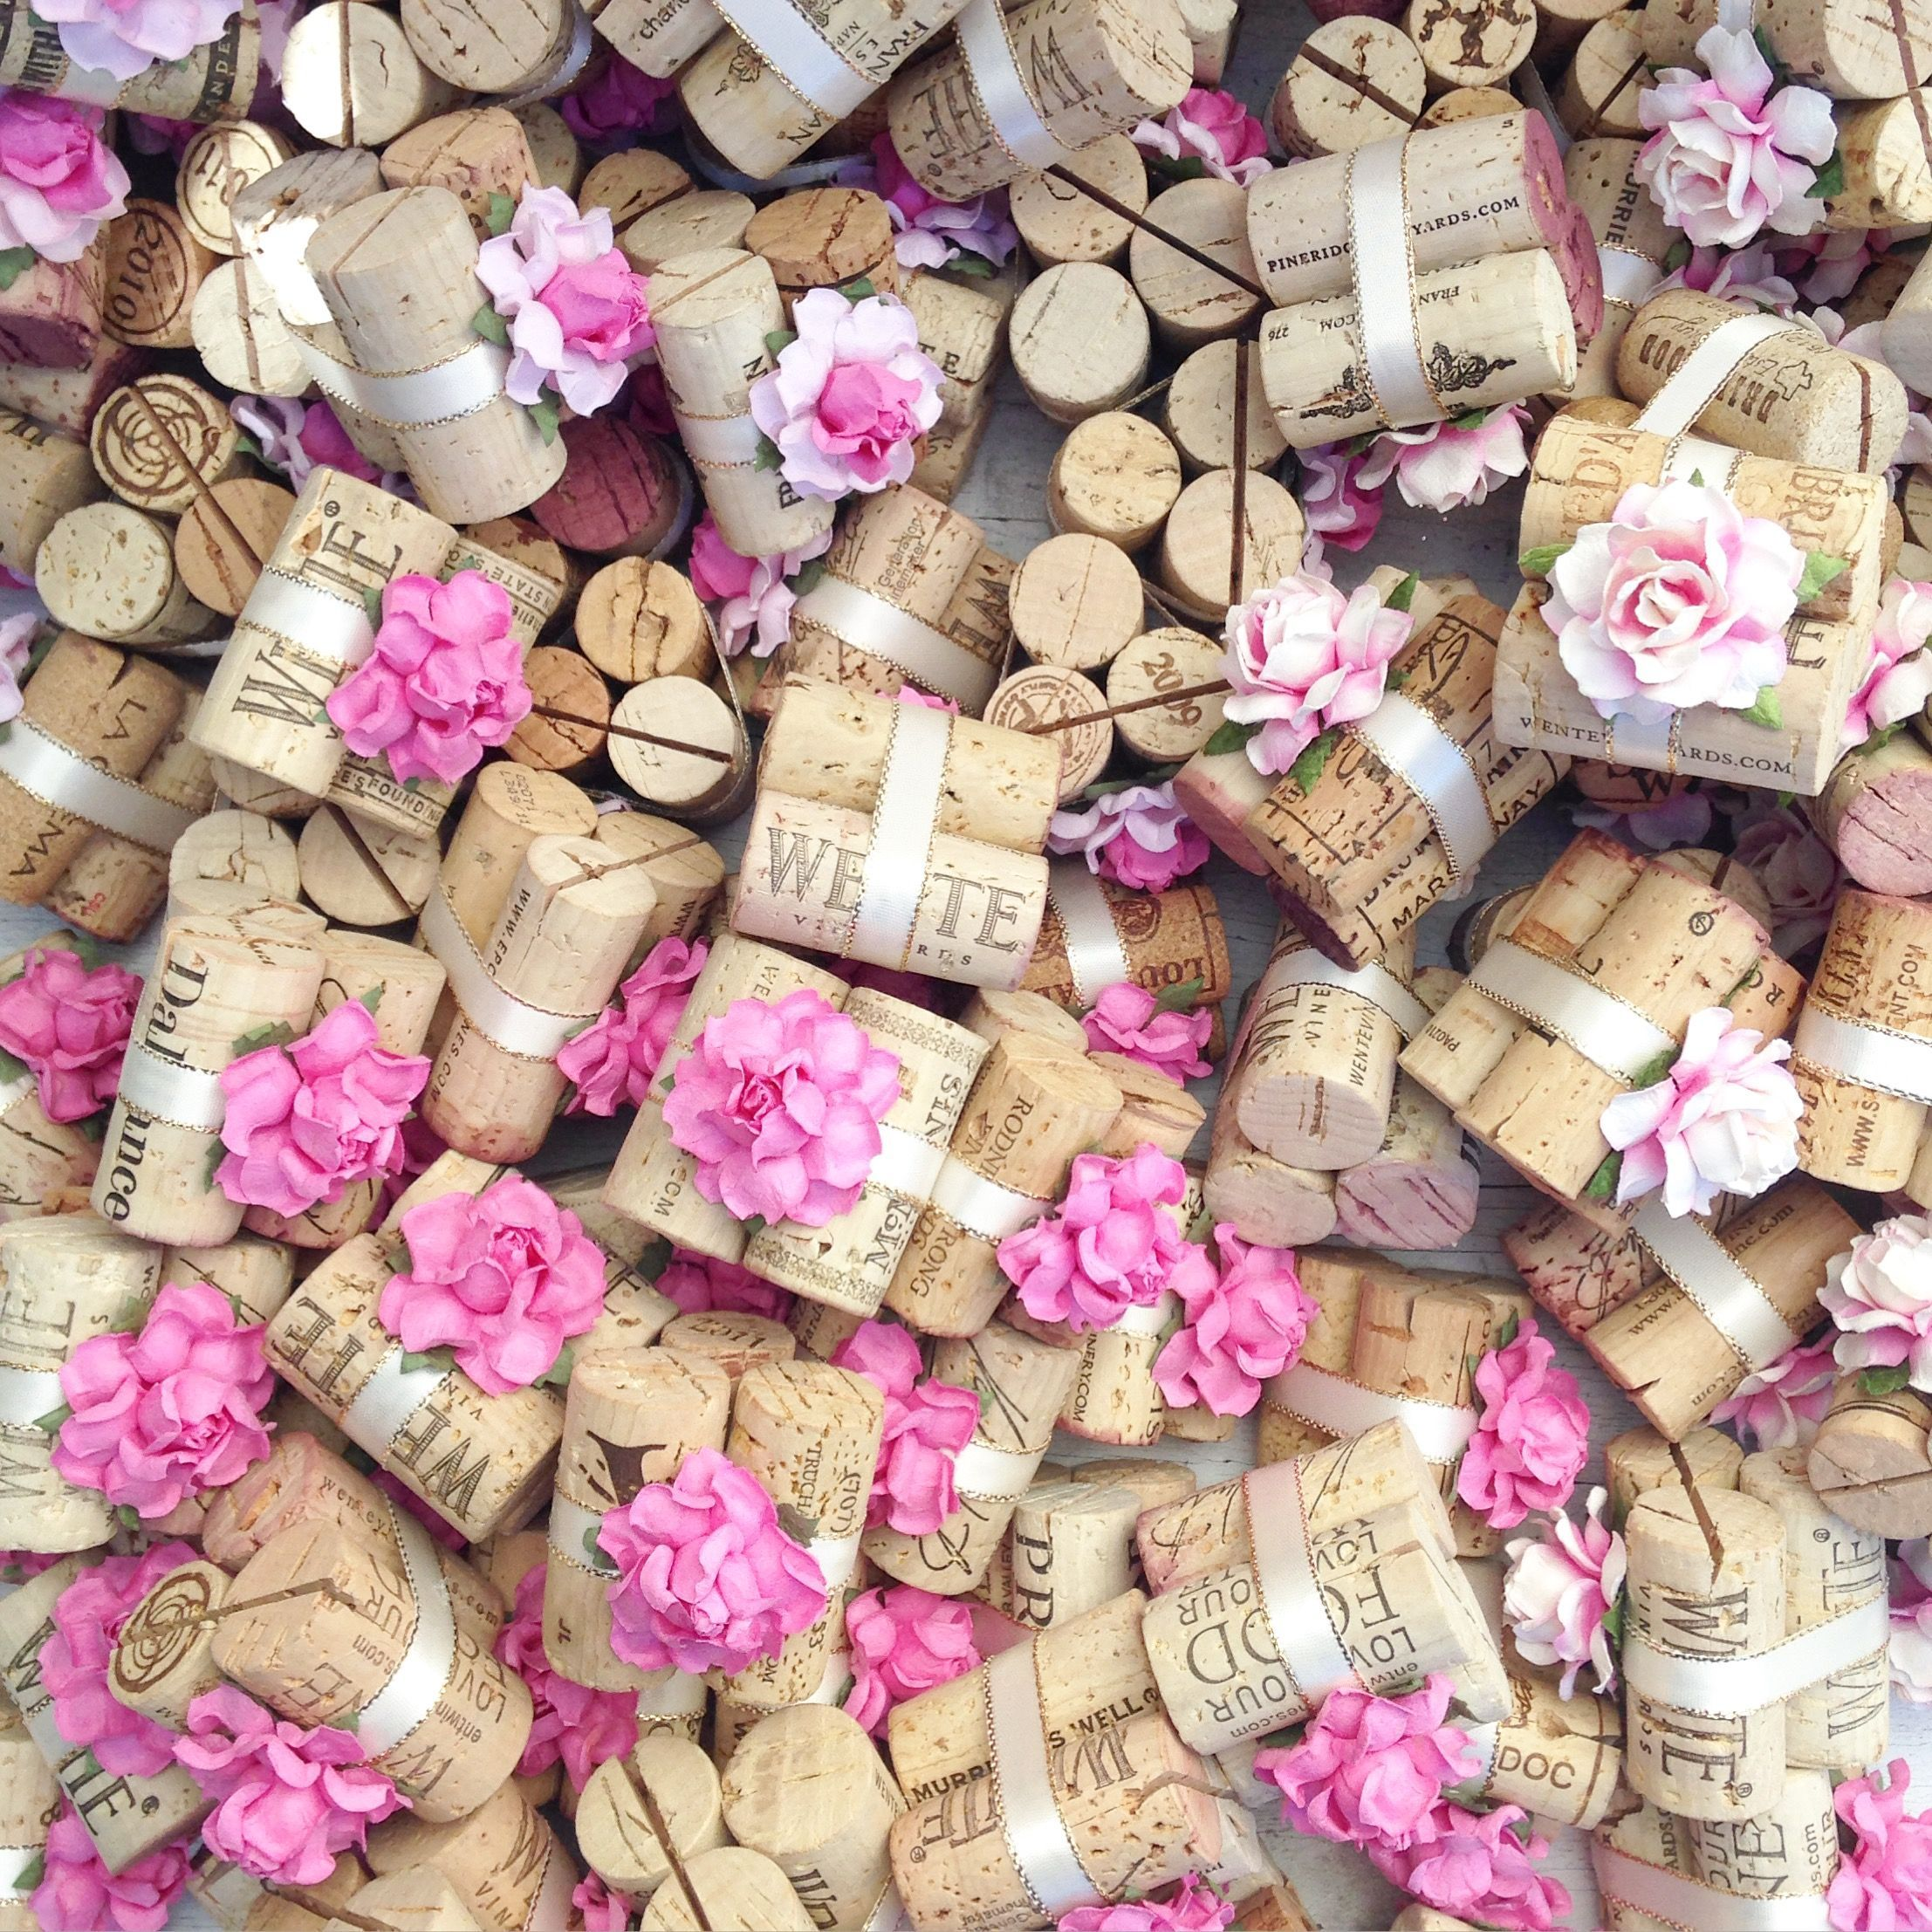 Party 25 Handmade Champagne Cork Place Card Holders for Wedding Wine Event